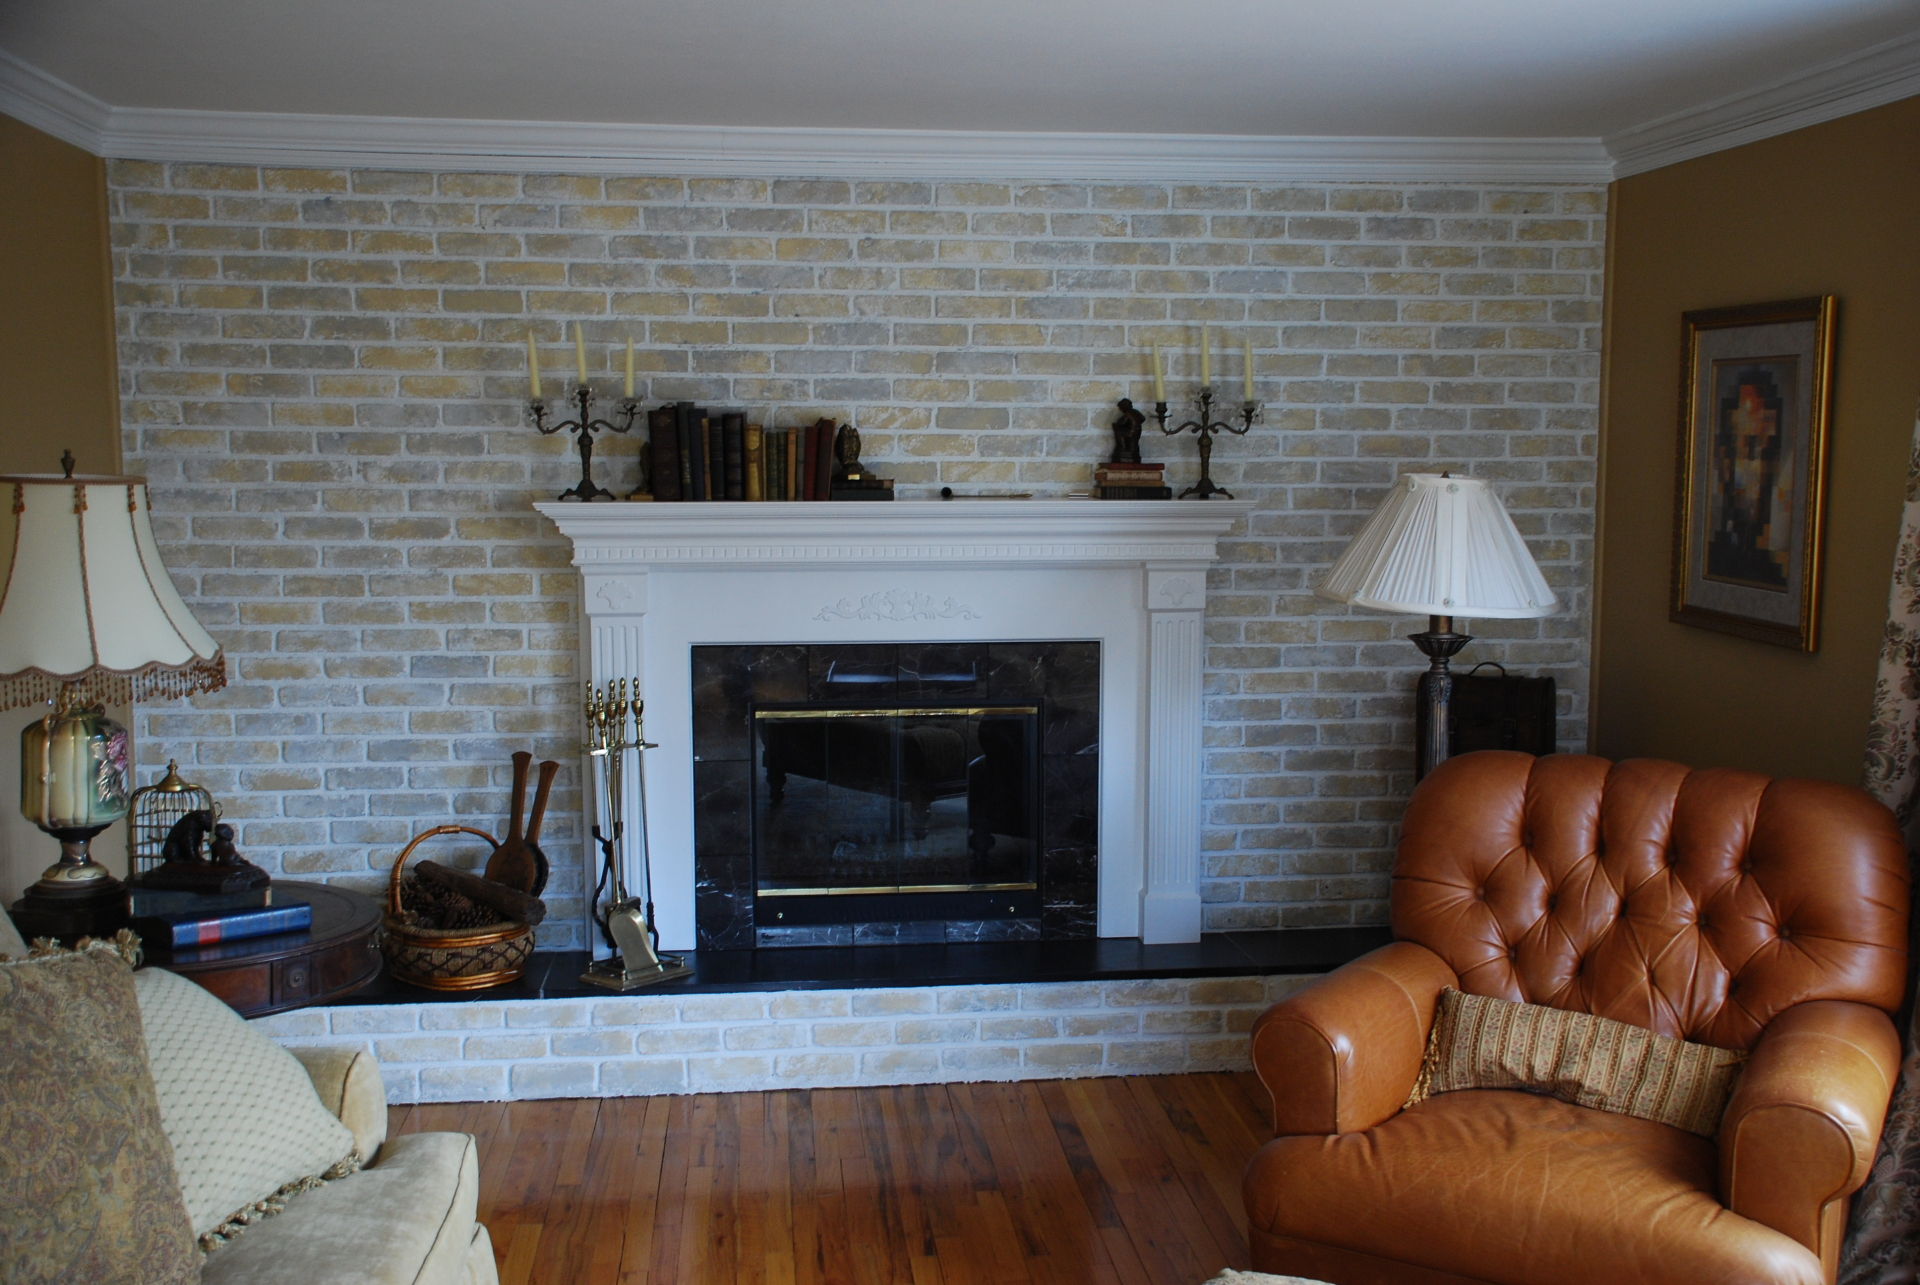 Custom designed mantel, faux painted bricks, crown moulding, and fireplace breastplate